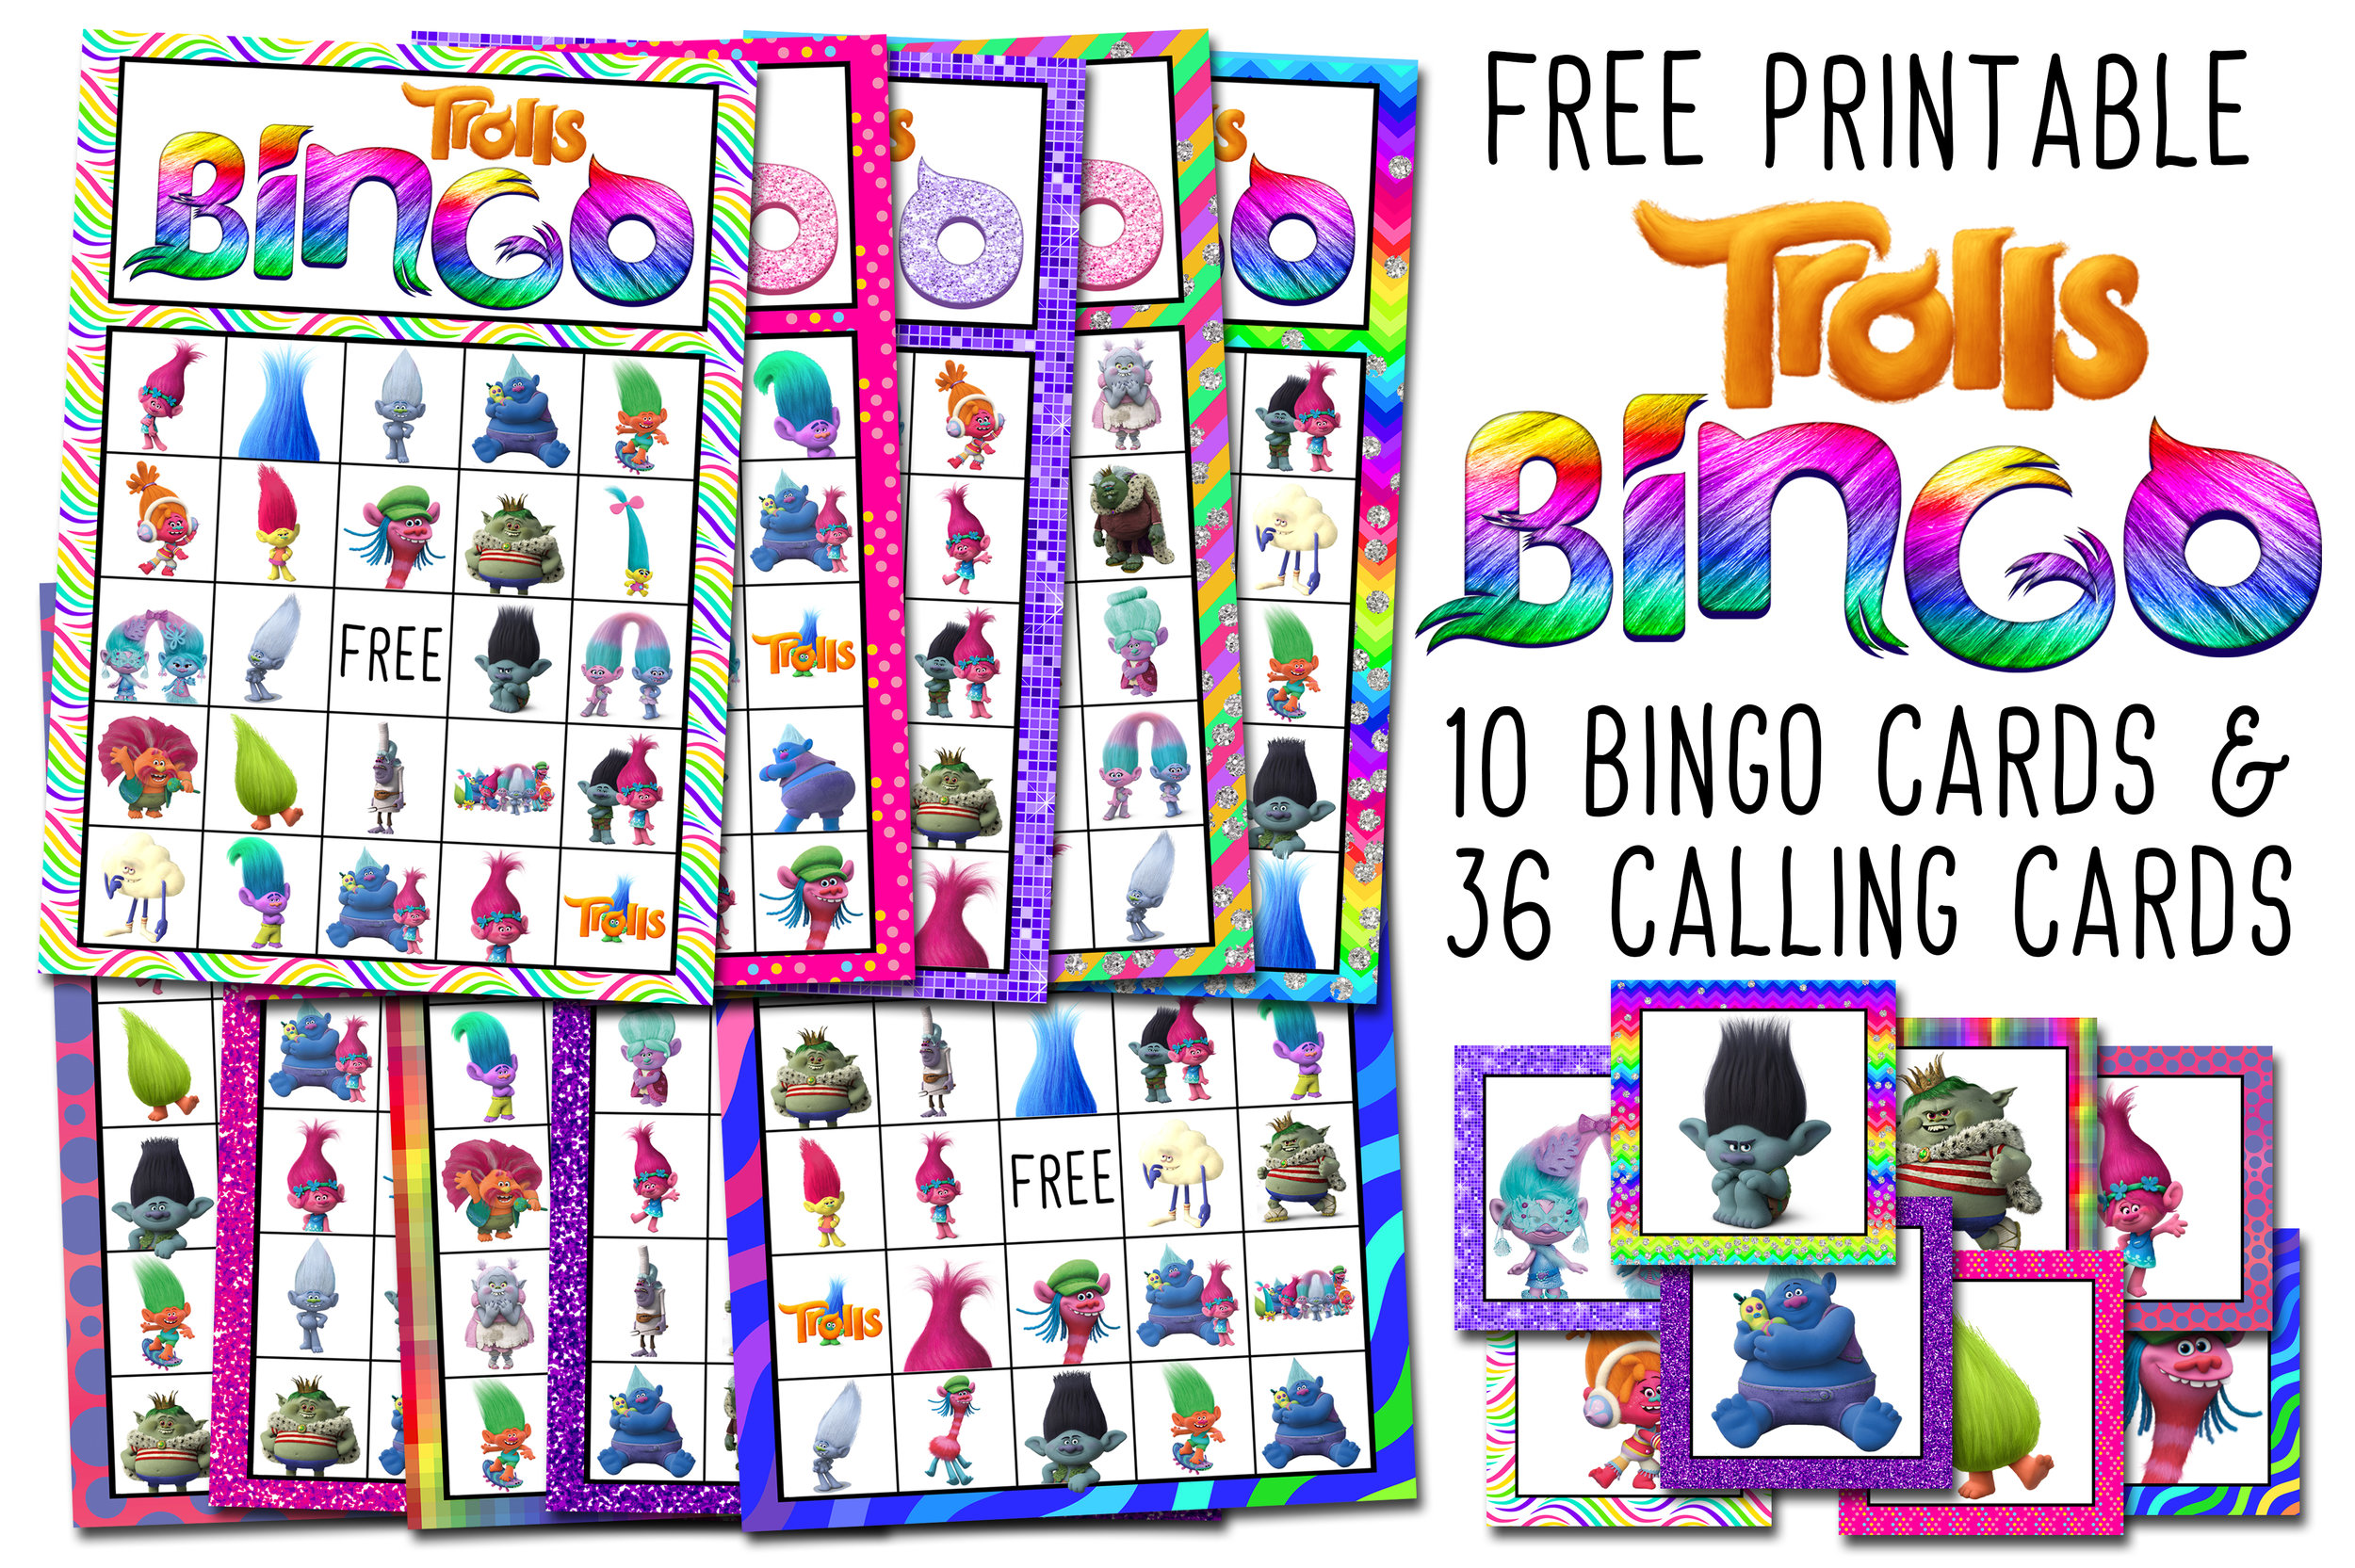 photograph about Printable Bingo Game Patterns referred to as Trolls Cost-free Printable Bingo Playing cards - Trolls Birthday Celebration